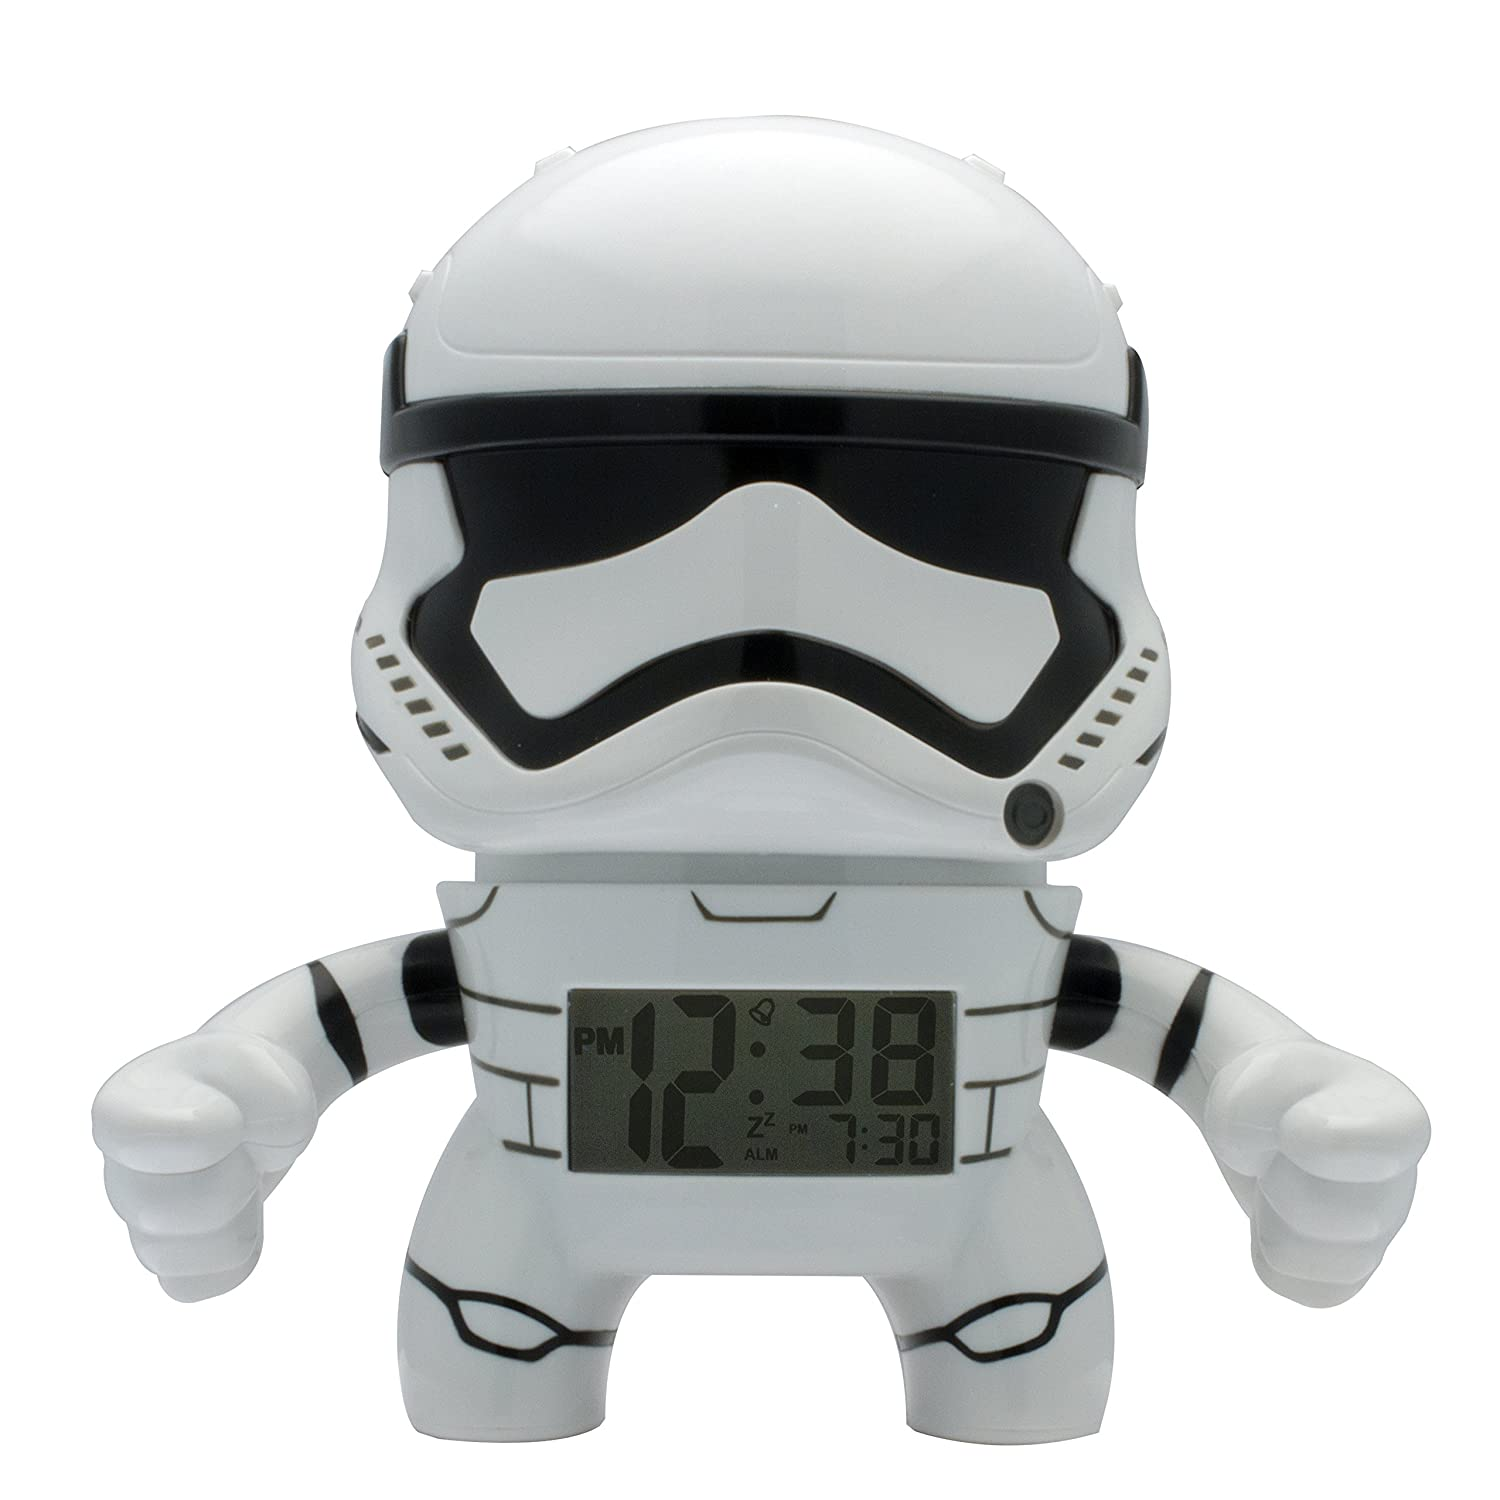 BulbBotz Star Wars 2020015 Stormtrooper Kids Light Up Alarm Clock | white/black | plastic | 7.5 inches tall | LCD display | boy girl | official ClicTime